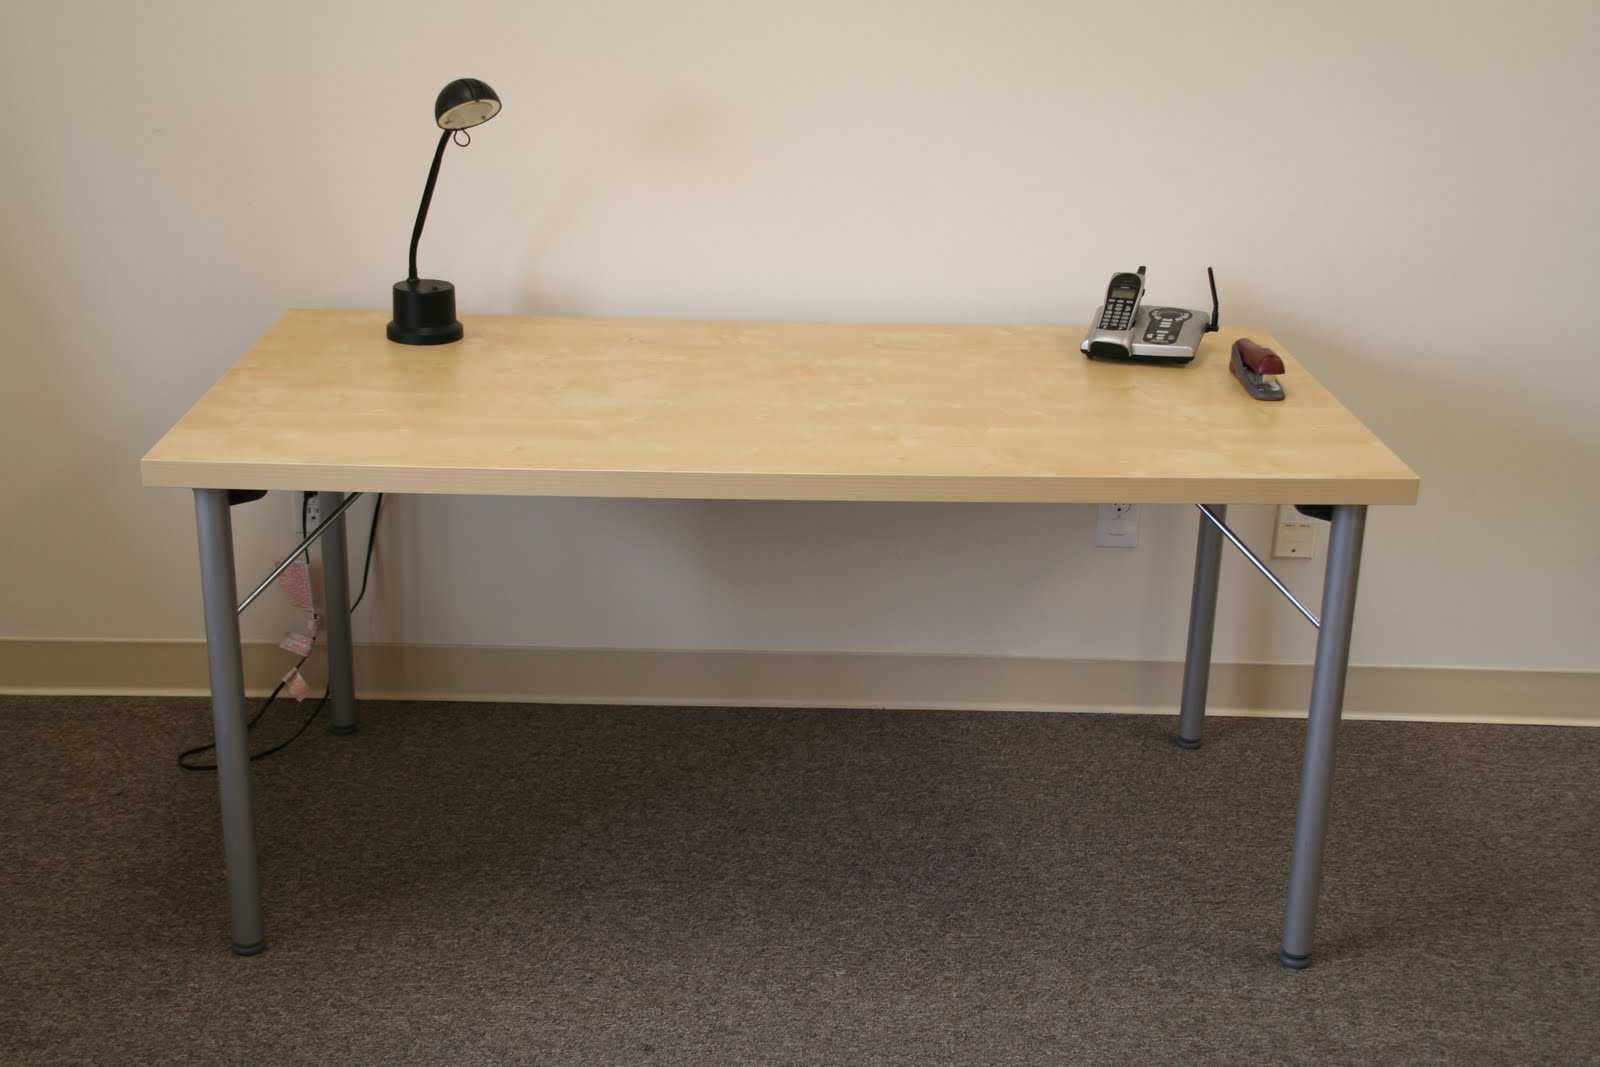 foldable office table. Folding Office Desk. Ikea Desk (folding Legs) - $45 1 Foldable Table A